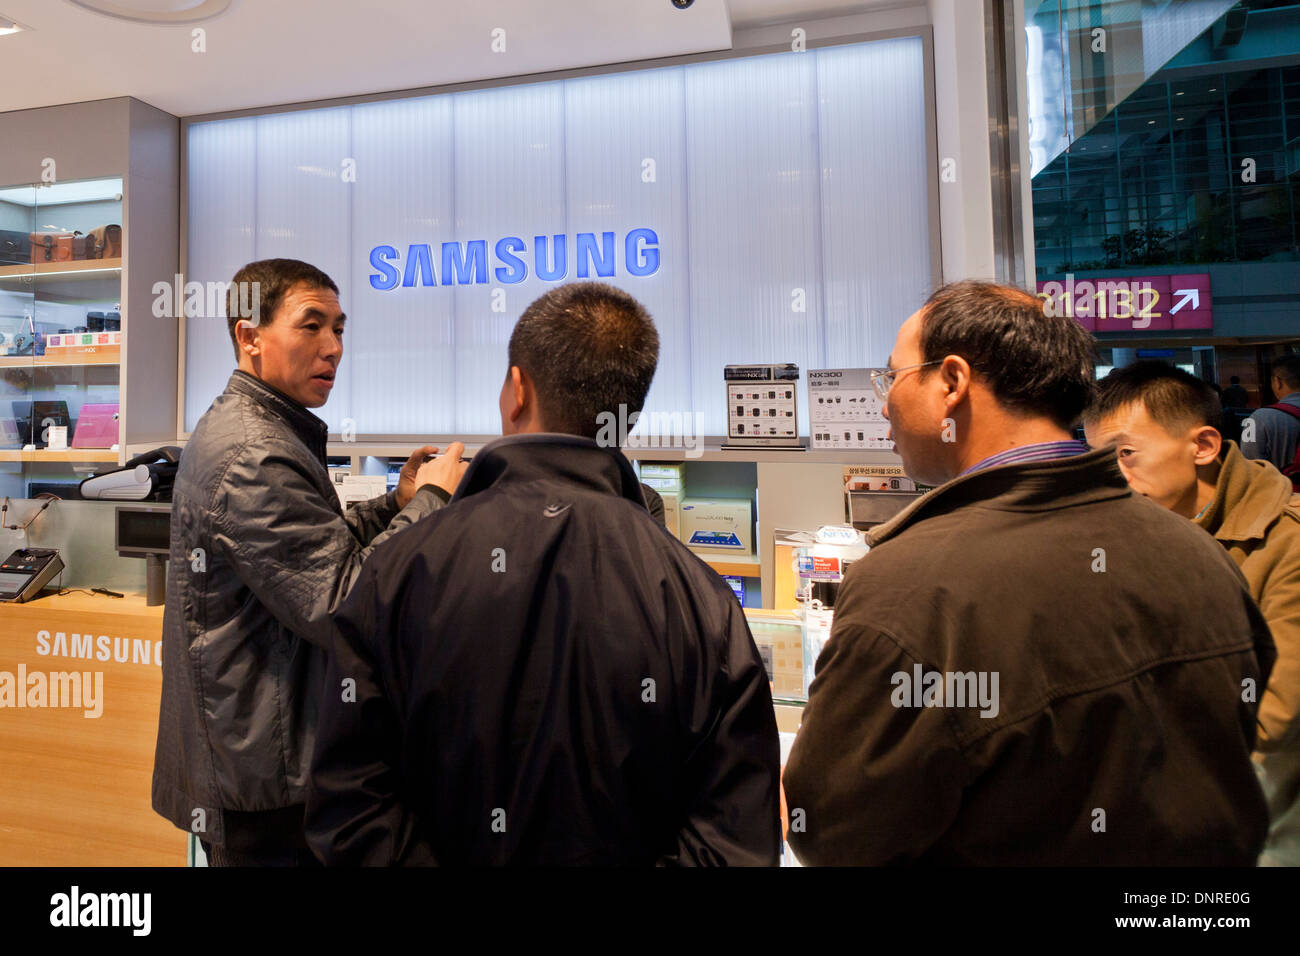 Shoppers in Samsung electronics store - Seoul, South Korea - Stock Image